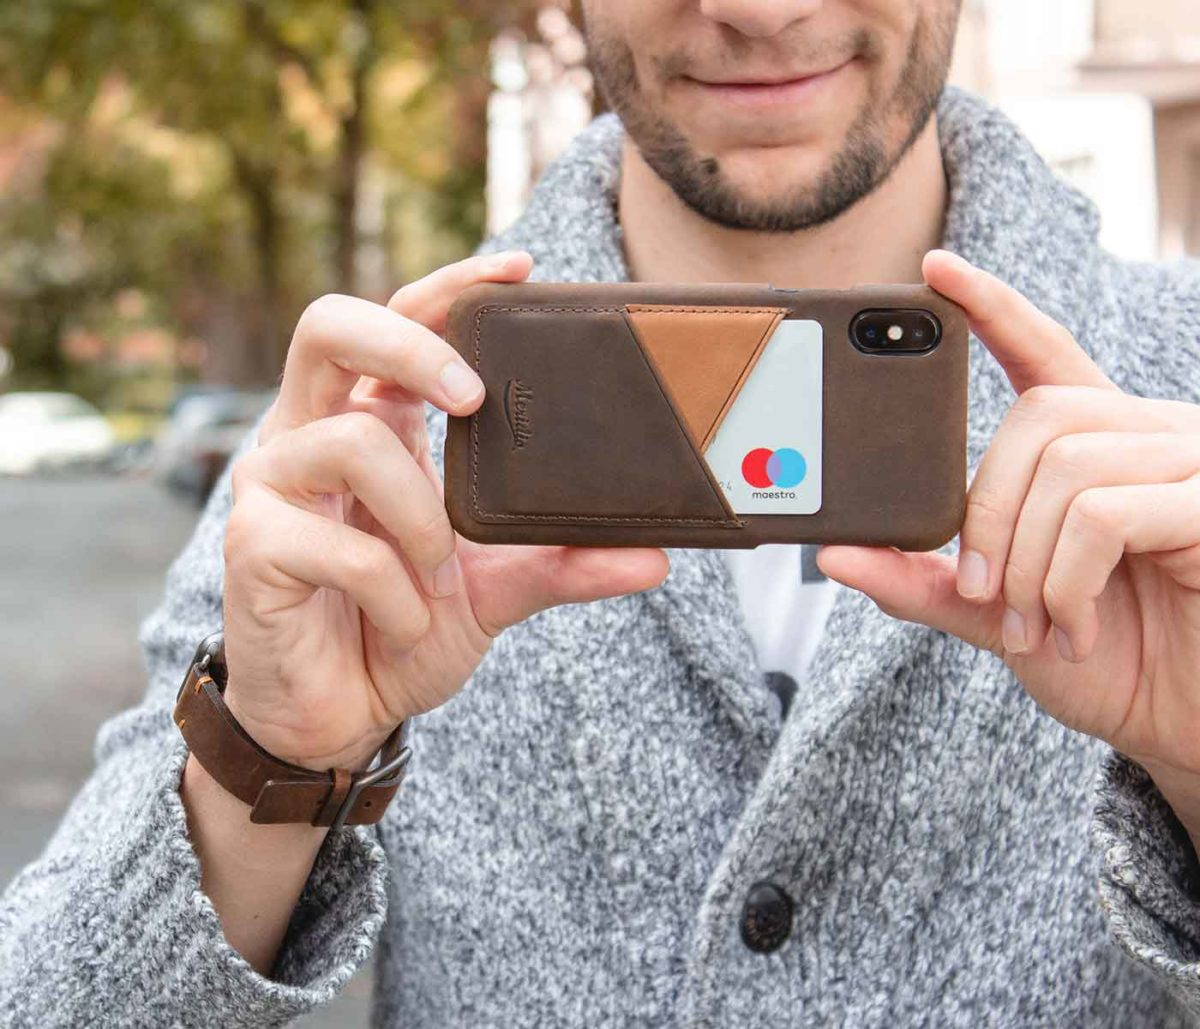 Cigar-Iphone-X-deep-brown-leather-case-and-a-man-with-grey-pullover-bs